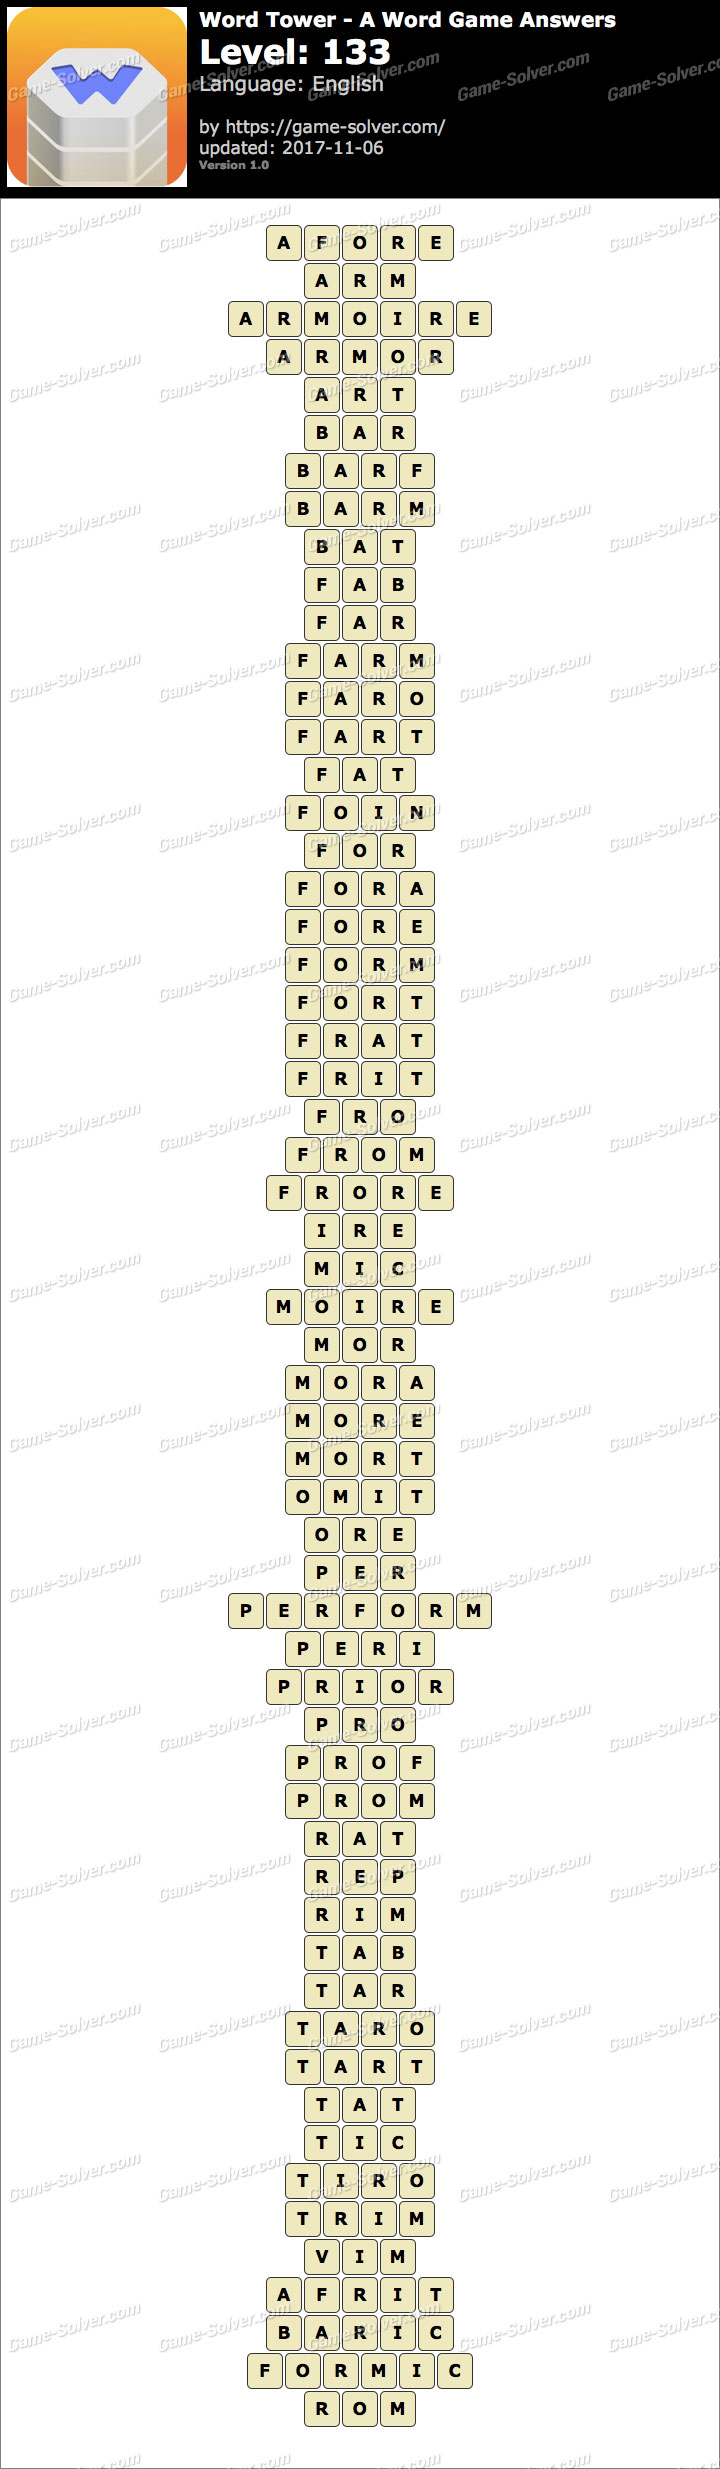 Word Tower Level 133 Answers